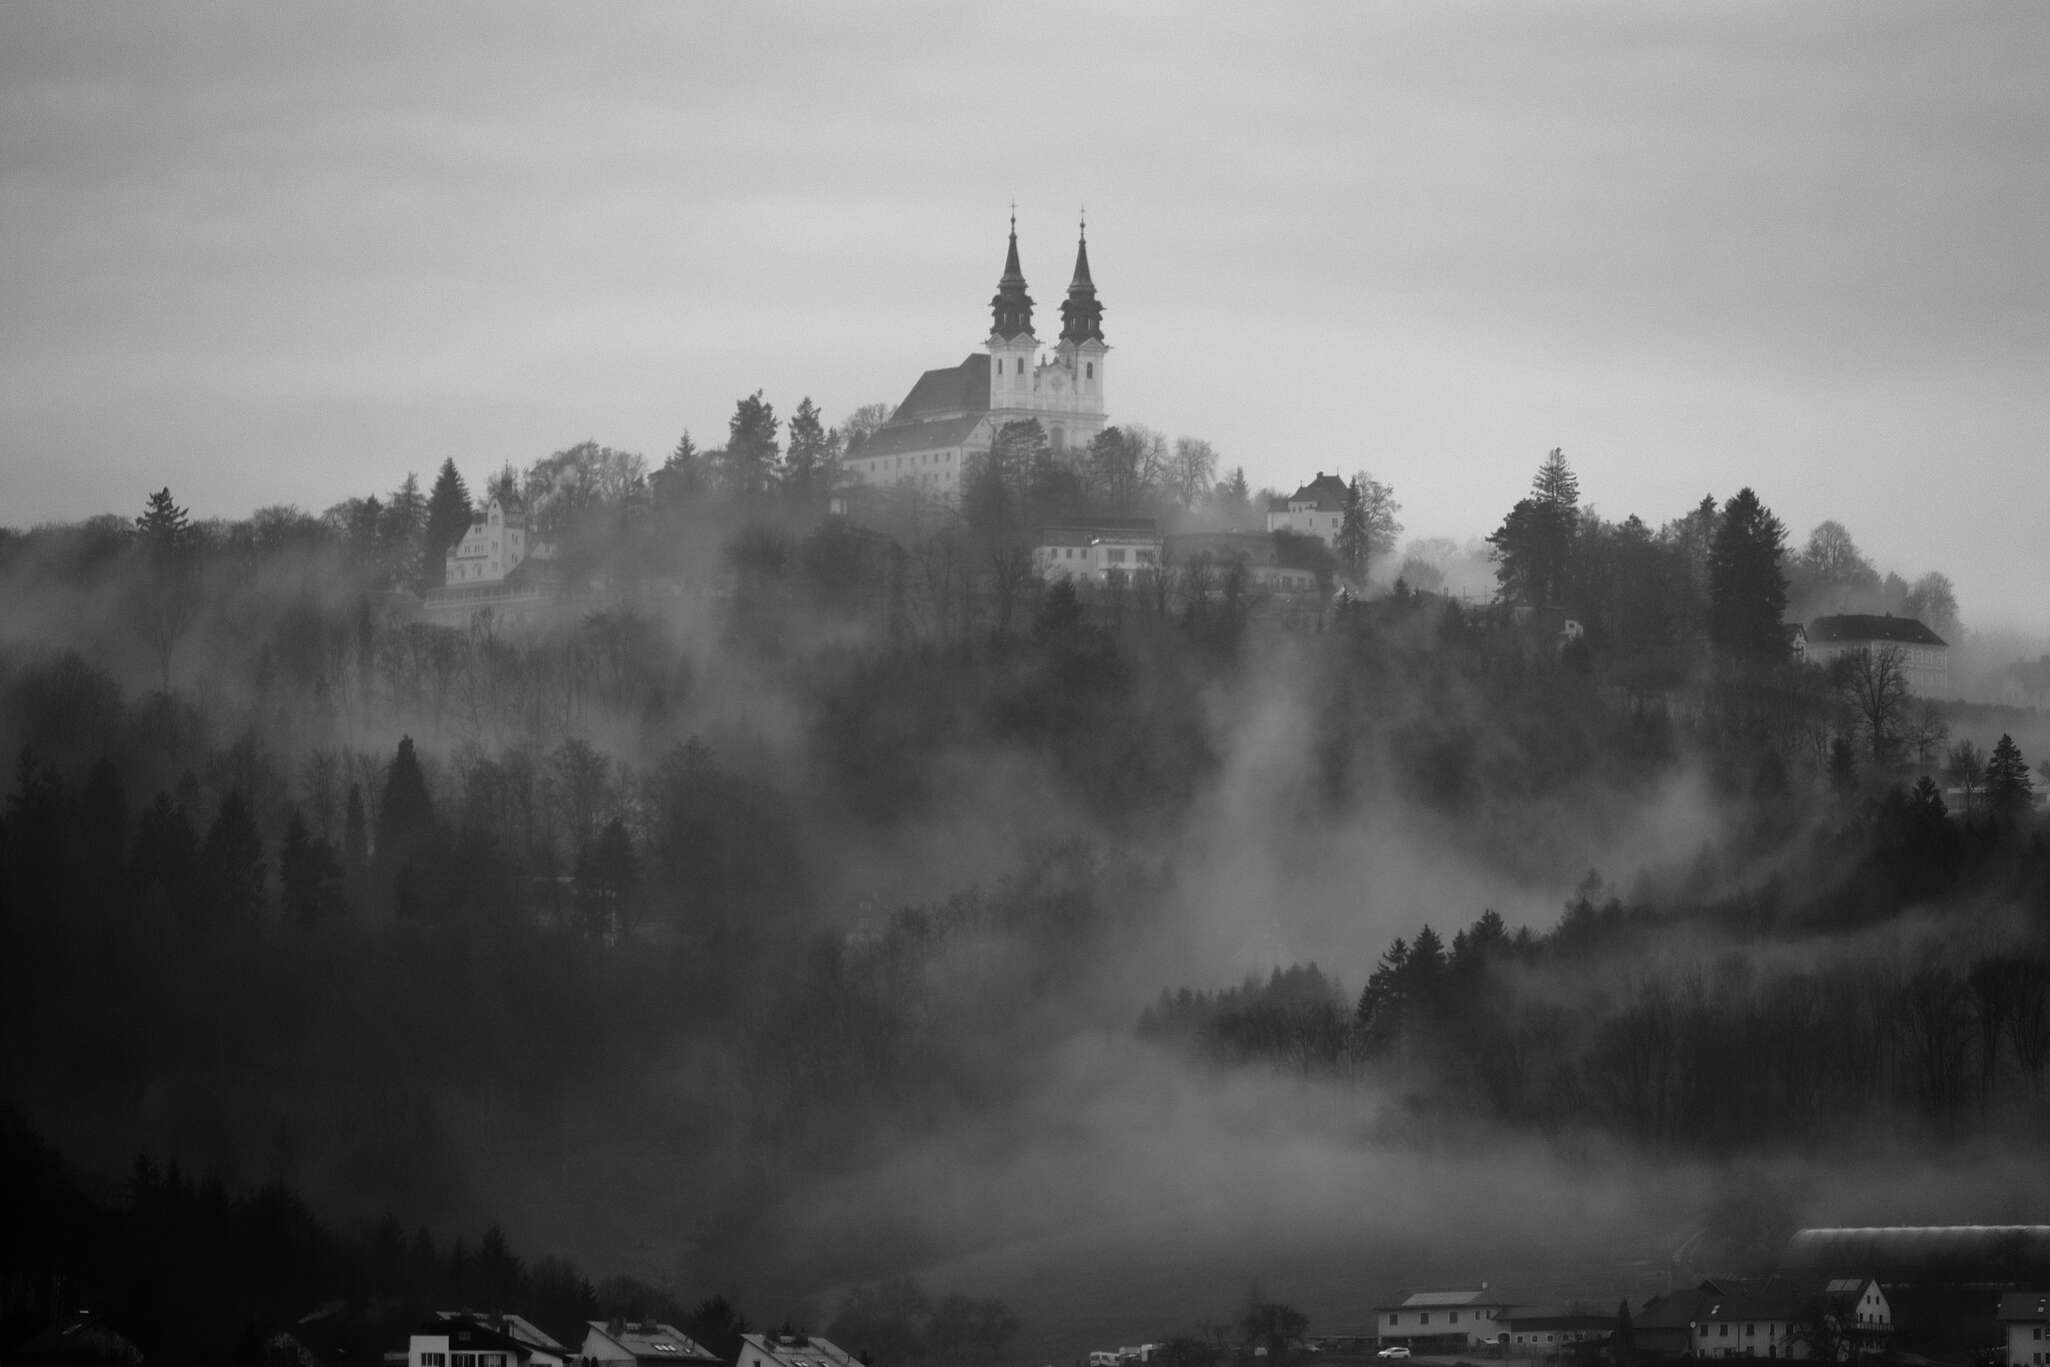 Nebel am Pöstlingberg in Linz